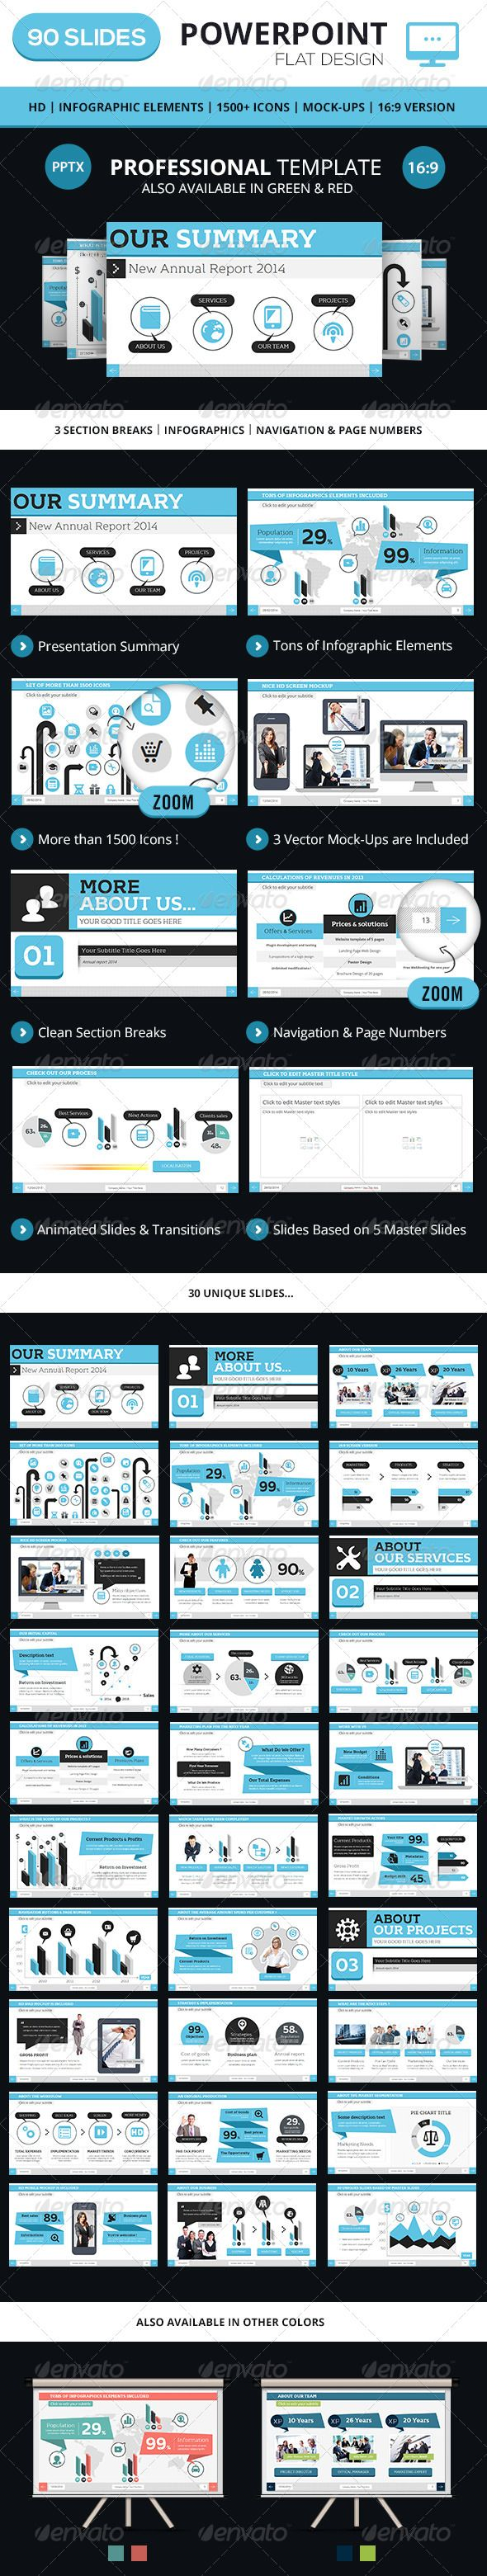 Powerpoint Business Presentation Template Infographic